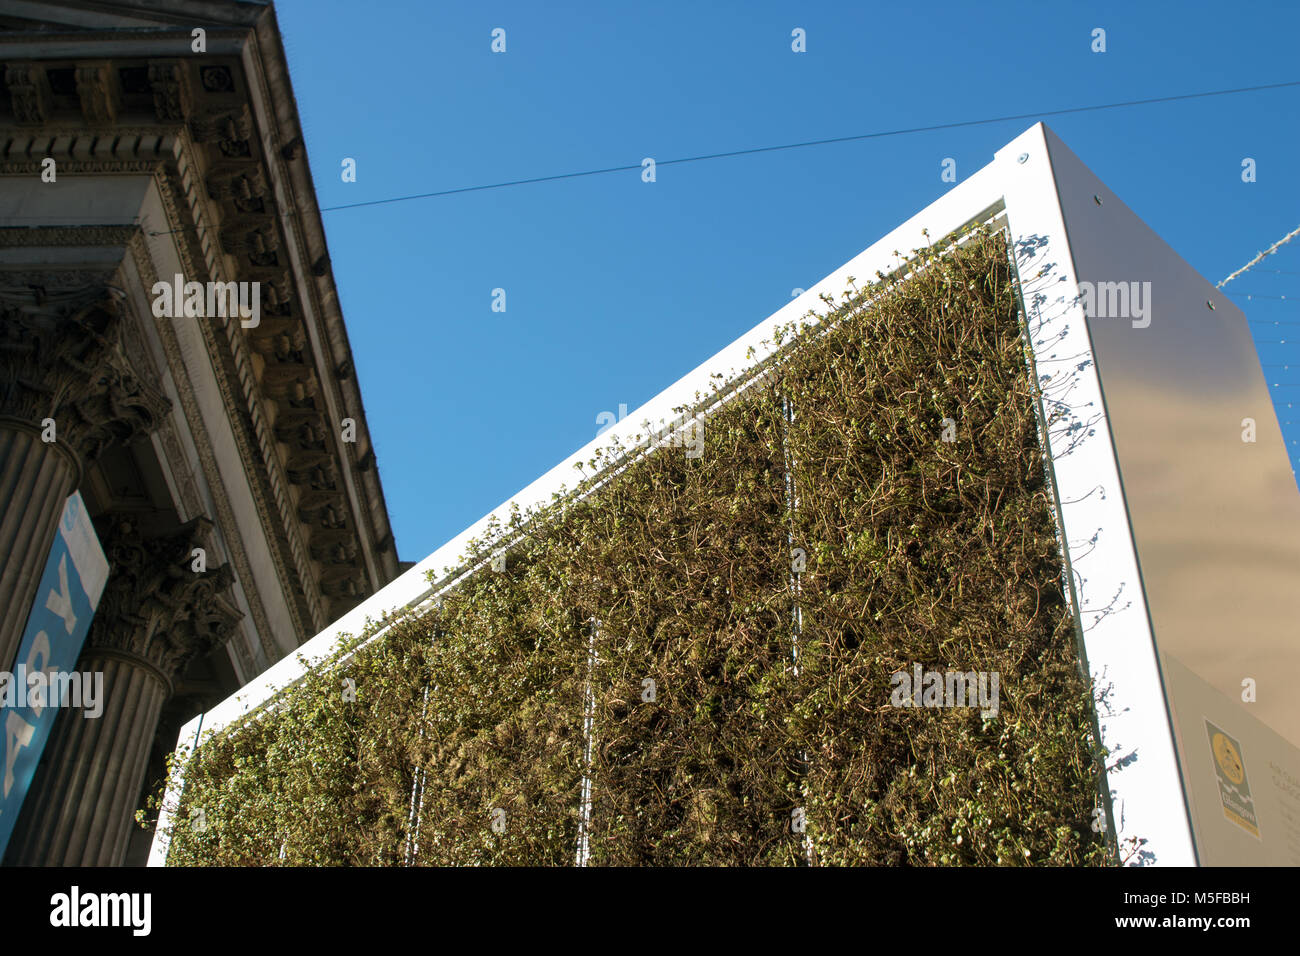 Environmentally friendly CityTree outside the Gallery of Modern Art, Queen Street, Glasgow, Scotland - Stock Image